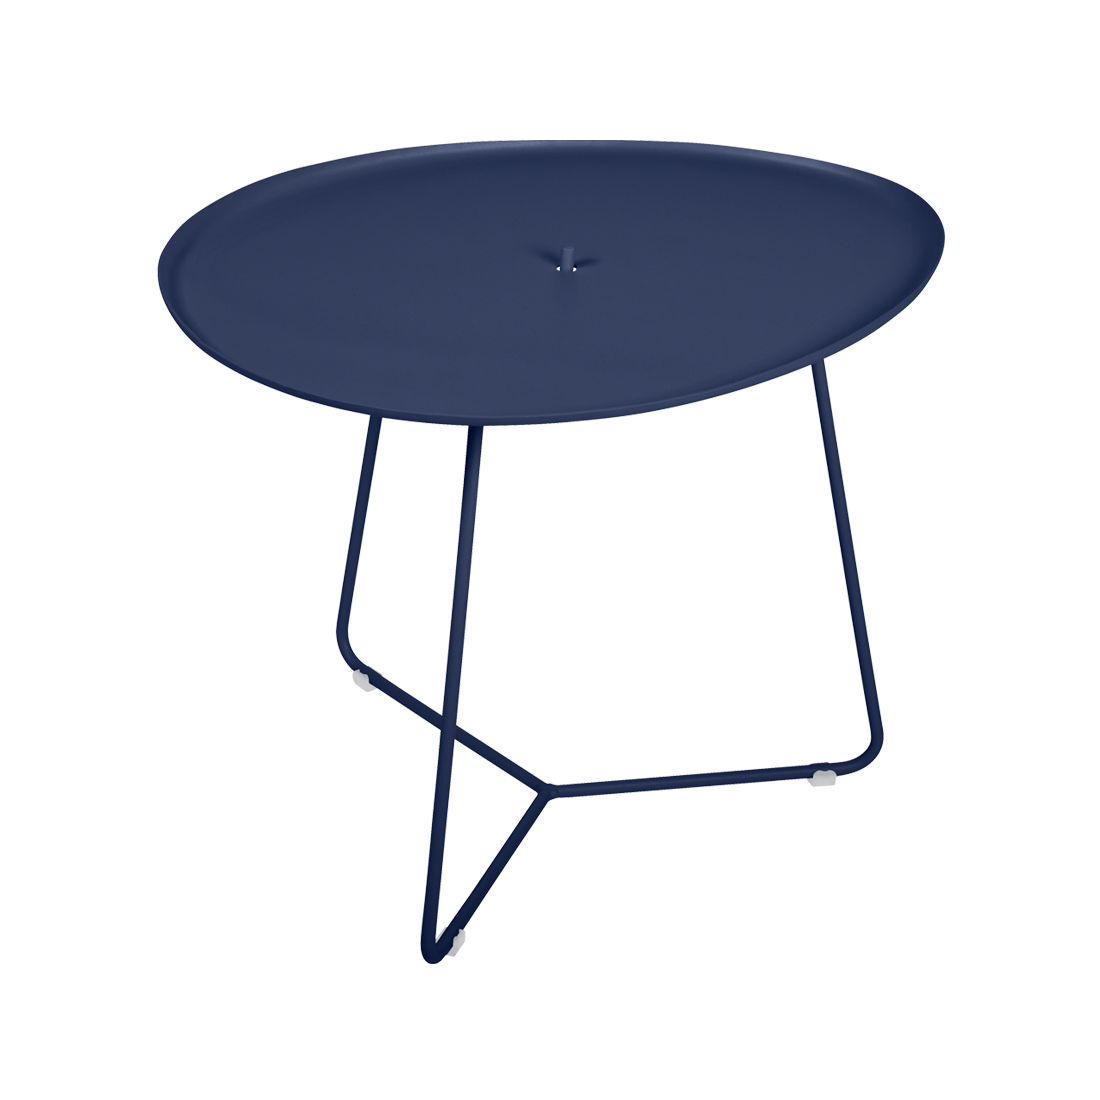 table basse metal, table basse fermob, table basse de jardin, table basse bleu